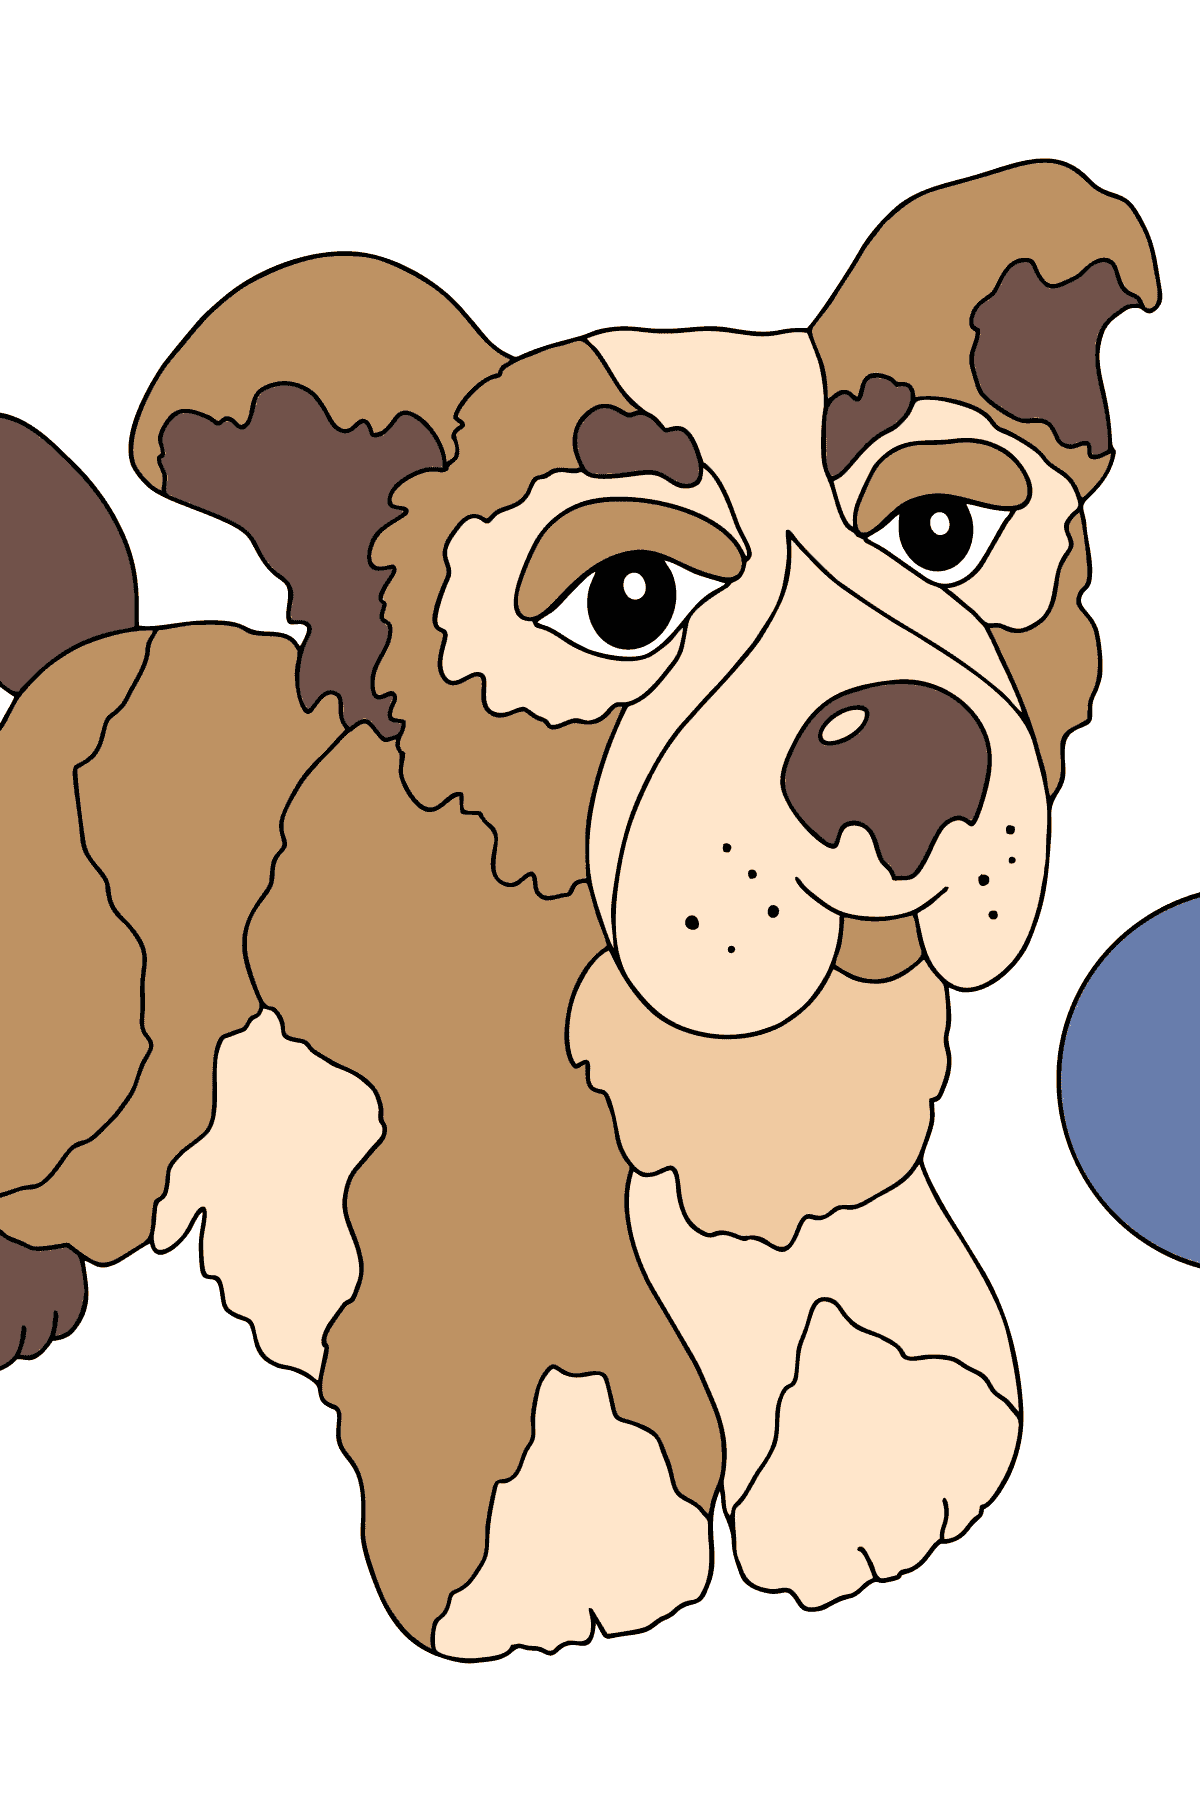 Coloring Page - A Dog is Jumping with a Blue Ball for Kids